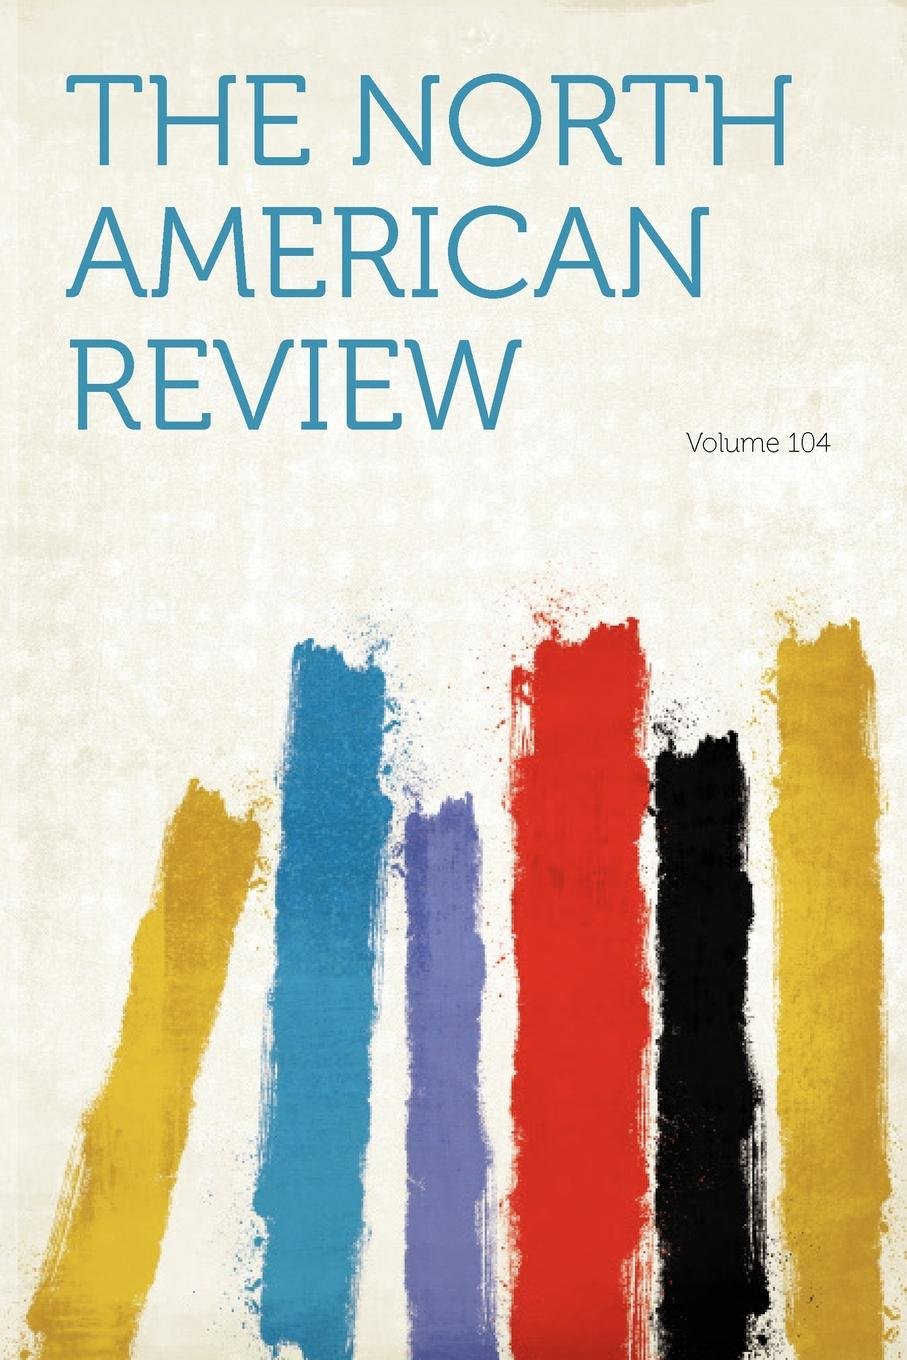 The North American Review Volume 104 PDF